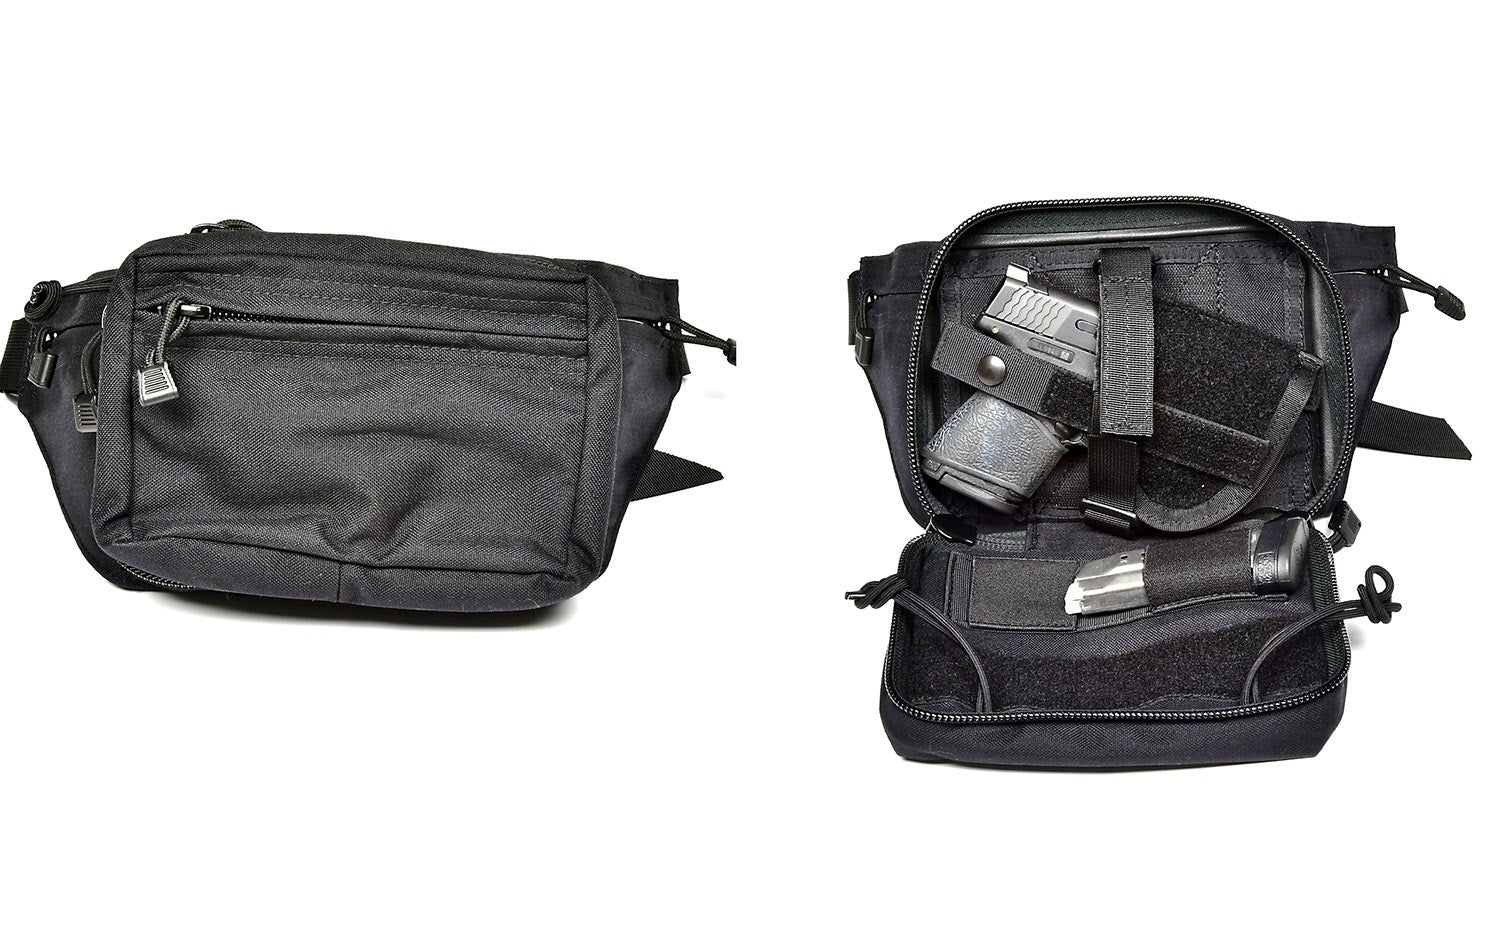 A black waist pack on a white background.